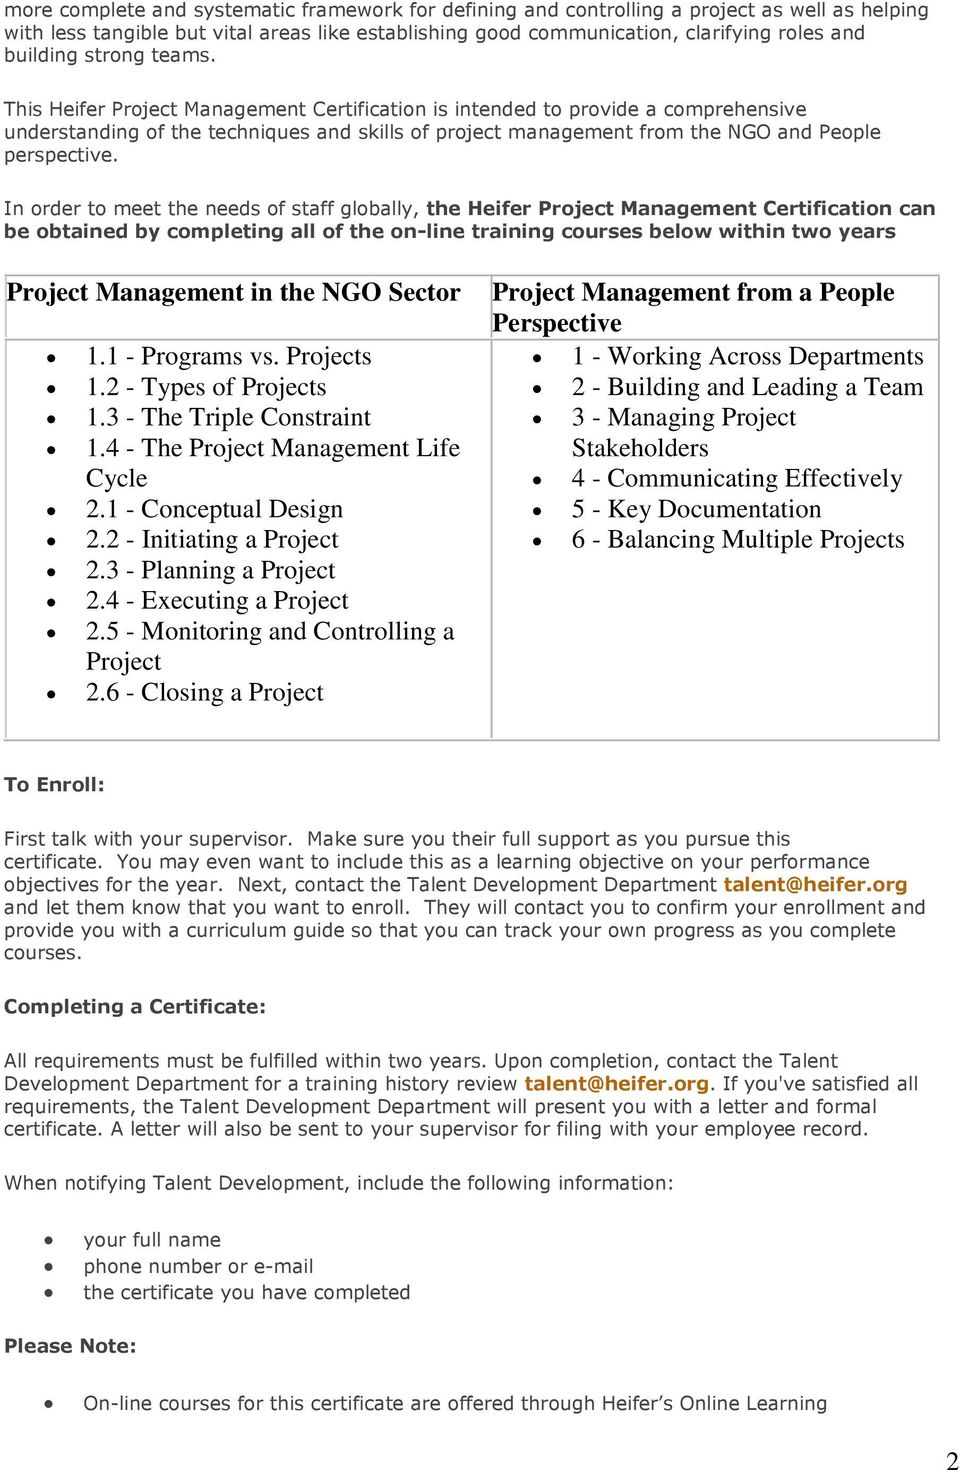 In order to meet the needs of staff globally, the Heifer Project Management Certification can be obtained by completing all of the on-line training courses below within two years Project Management